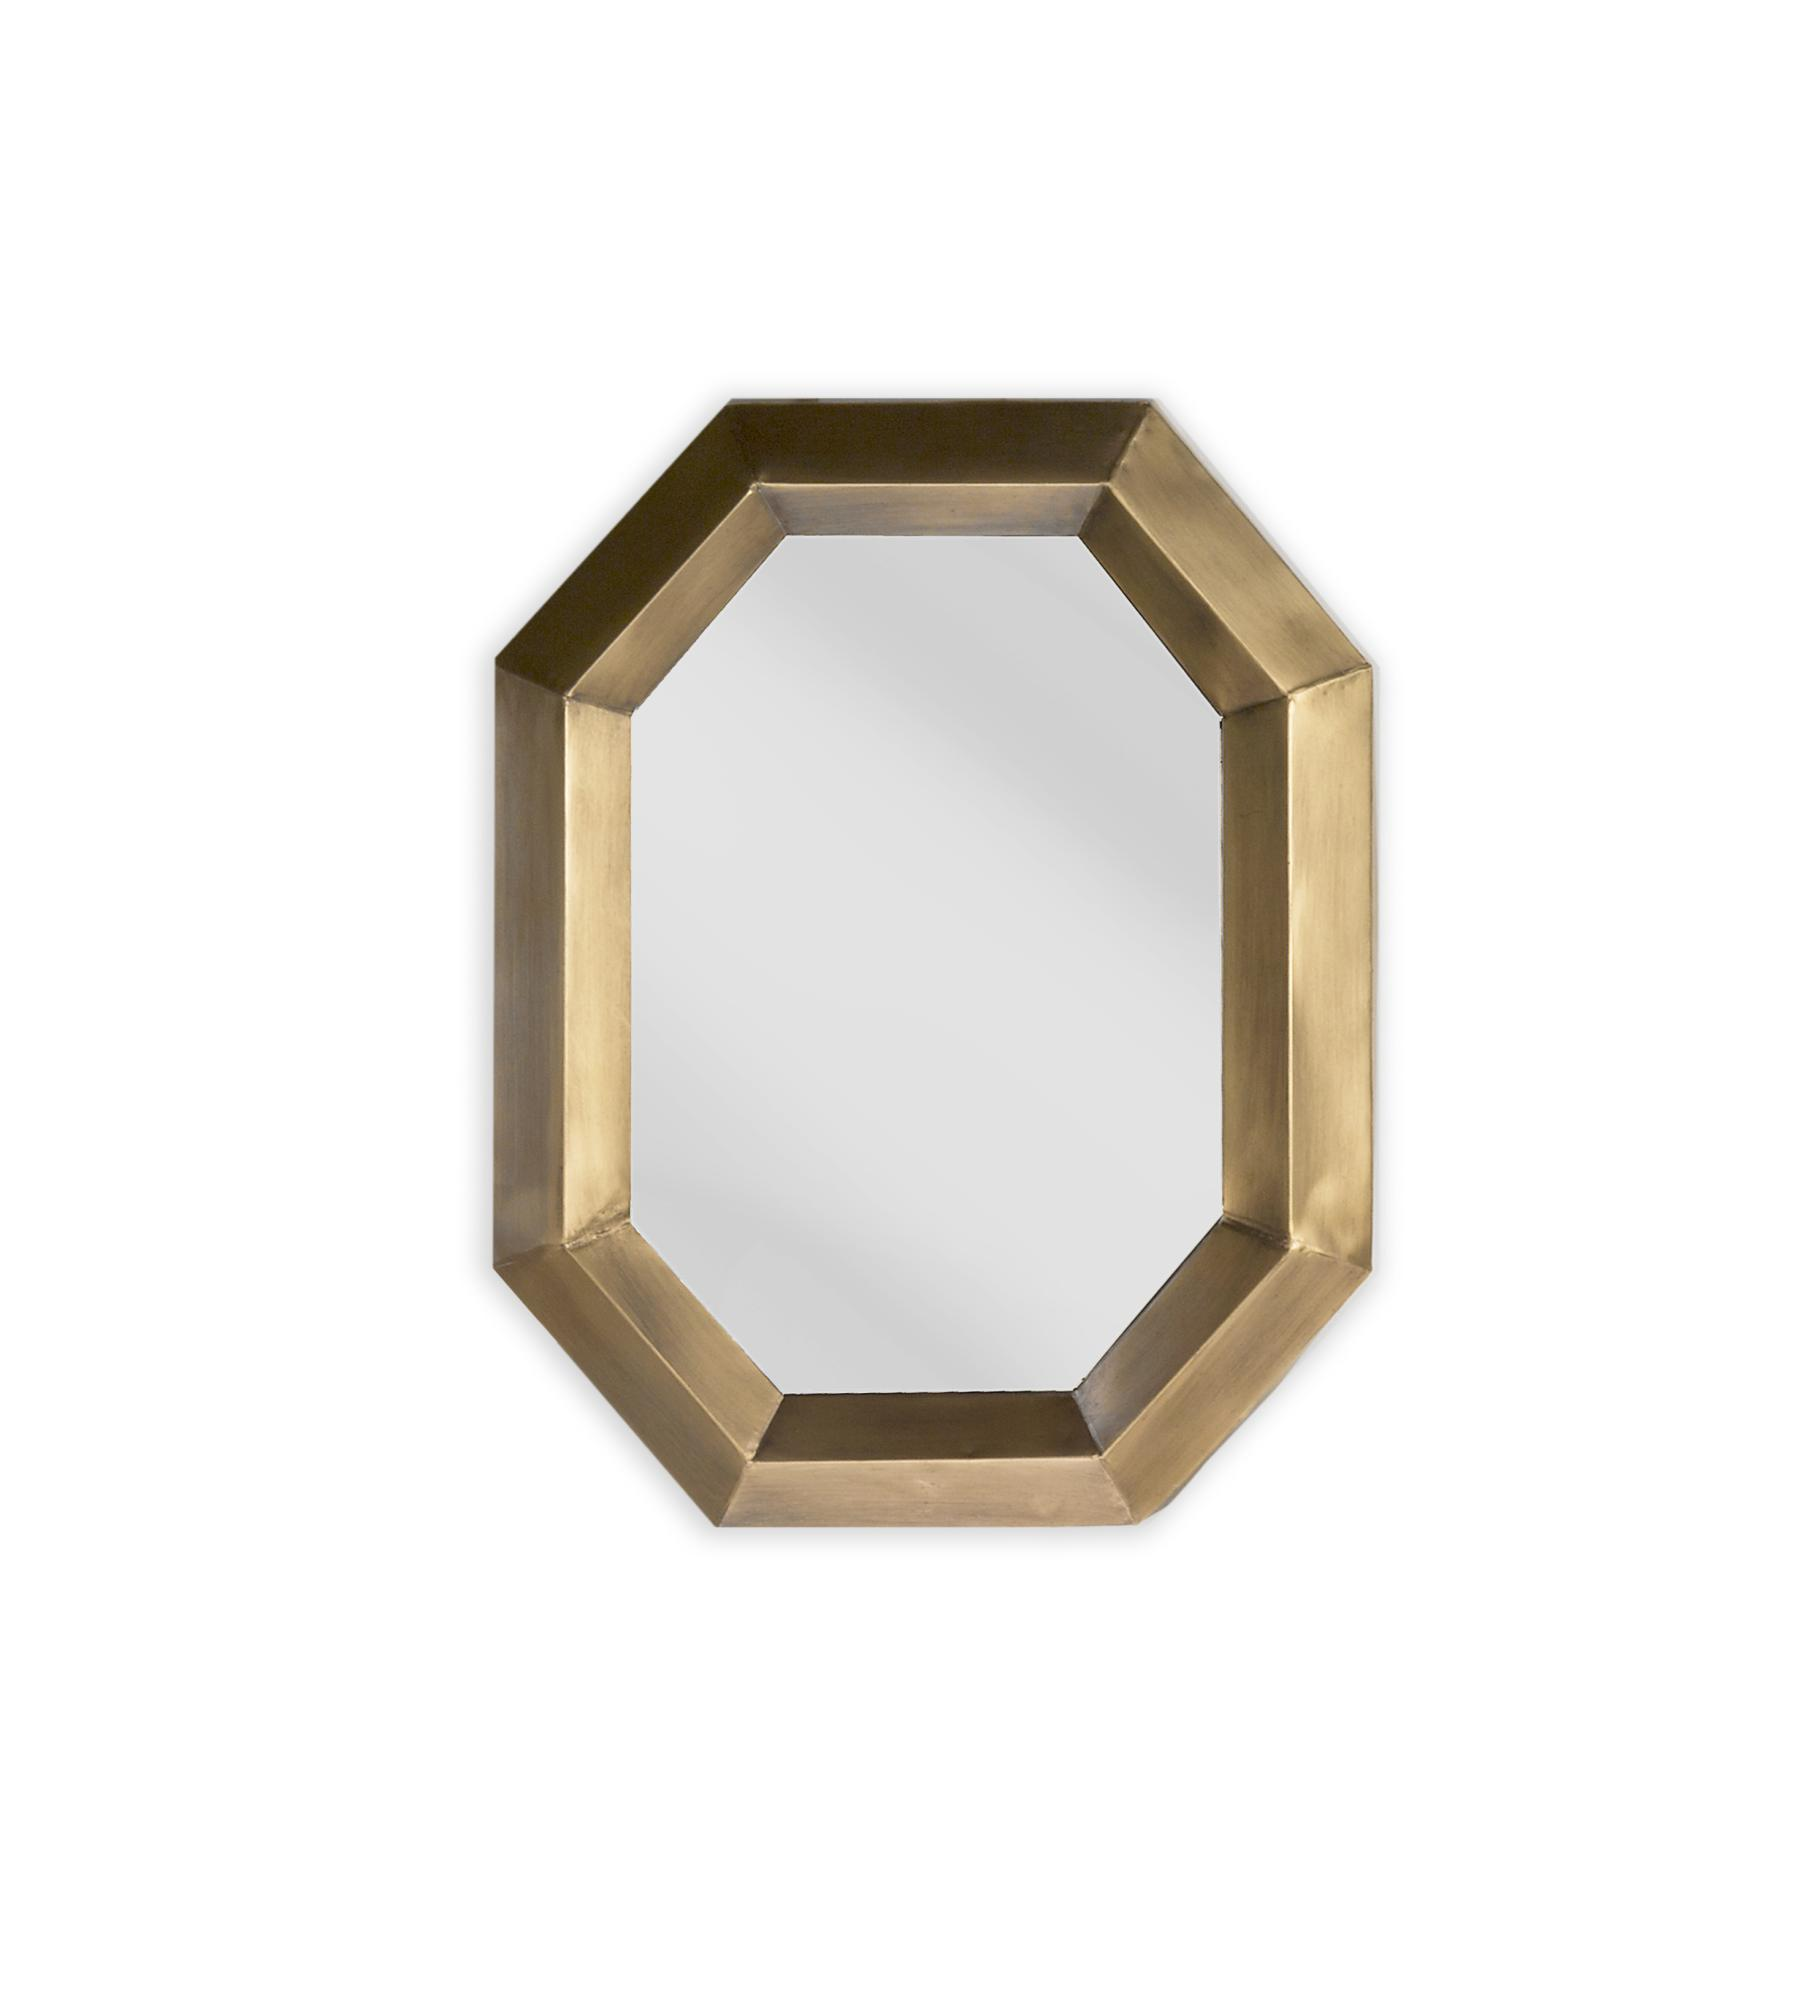 Octagon Wall Mirror Tripar International Inc